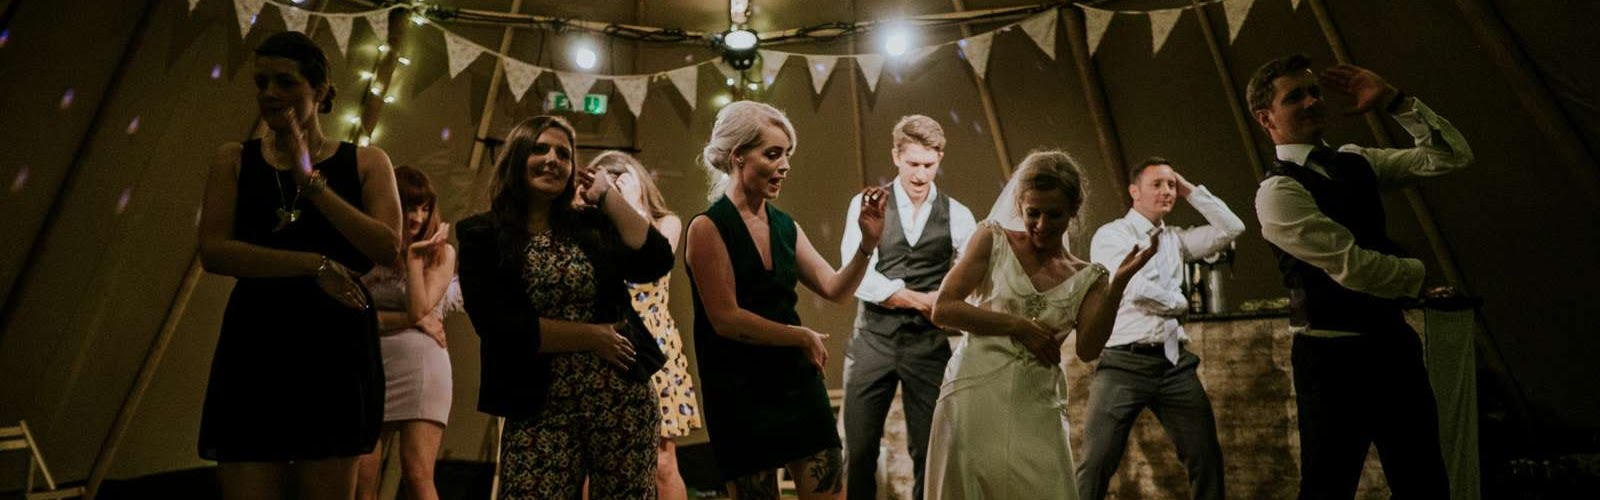 Wedding DJ For Hire In London | Platinum Disco